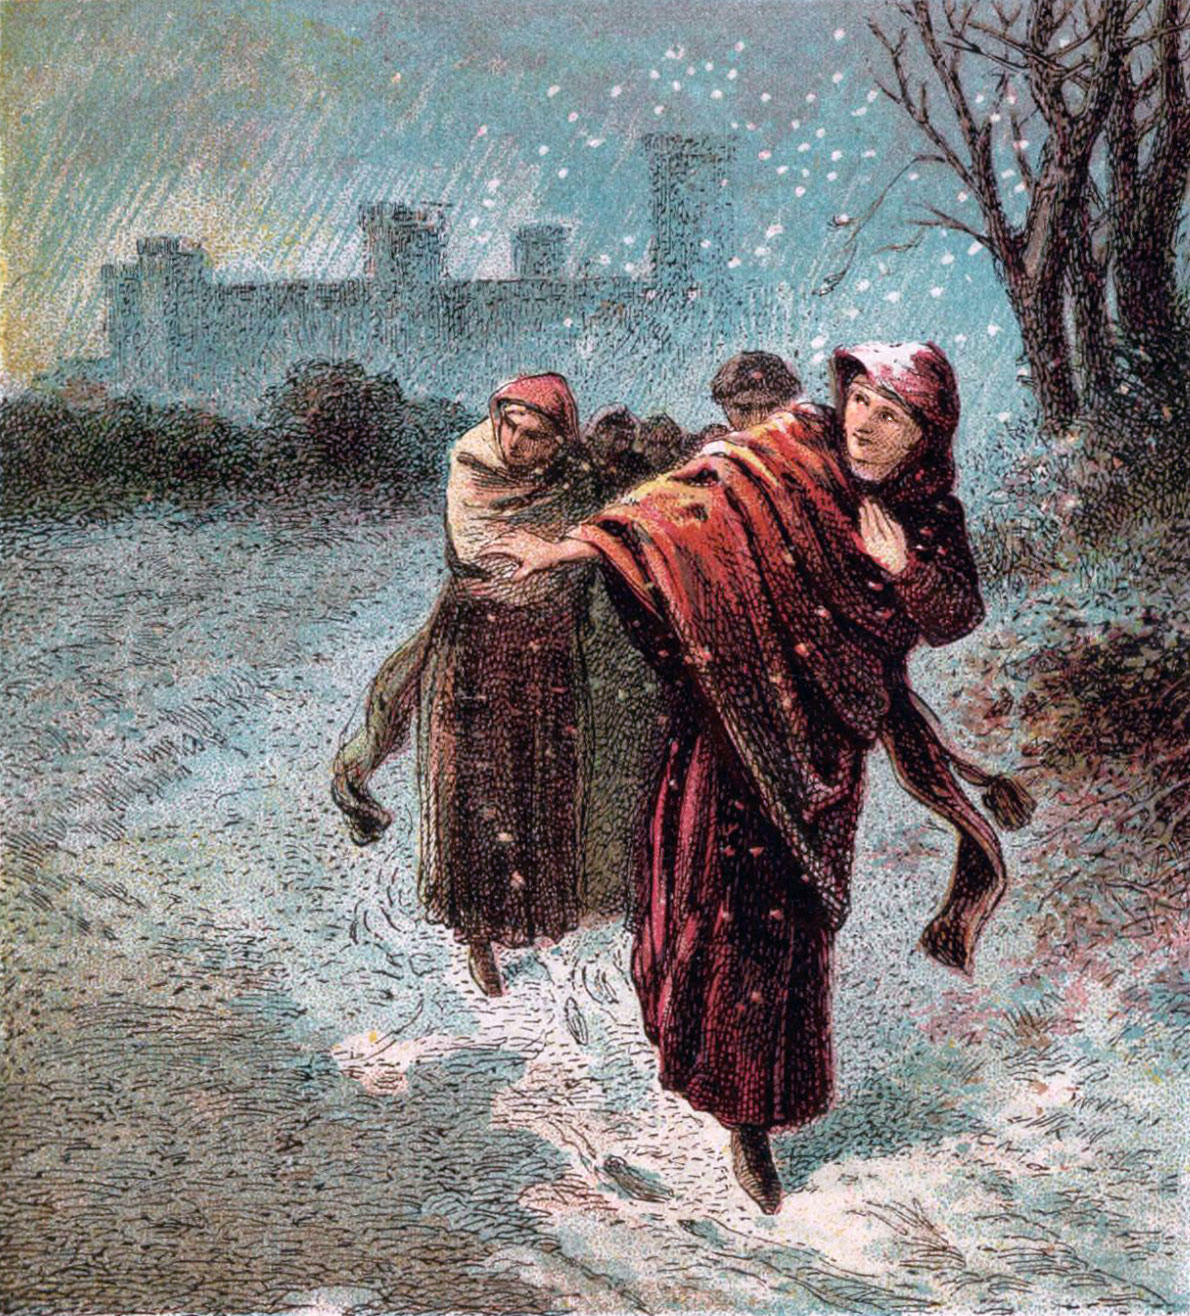 Painting of Empress Matilda escaping Oxford Castle, Christmas 1141 by Joseph Martin Kronheim, 1810-96